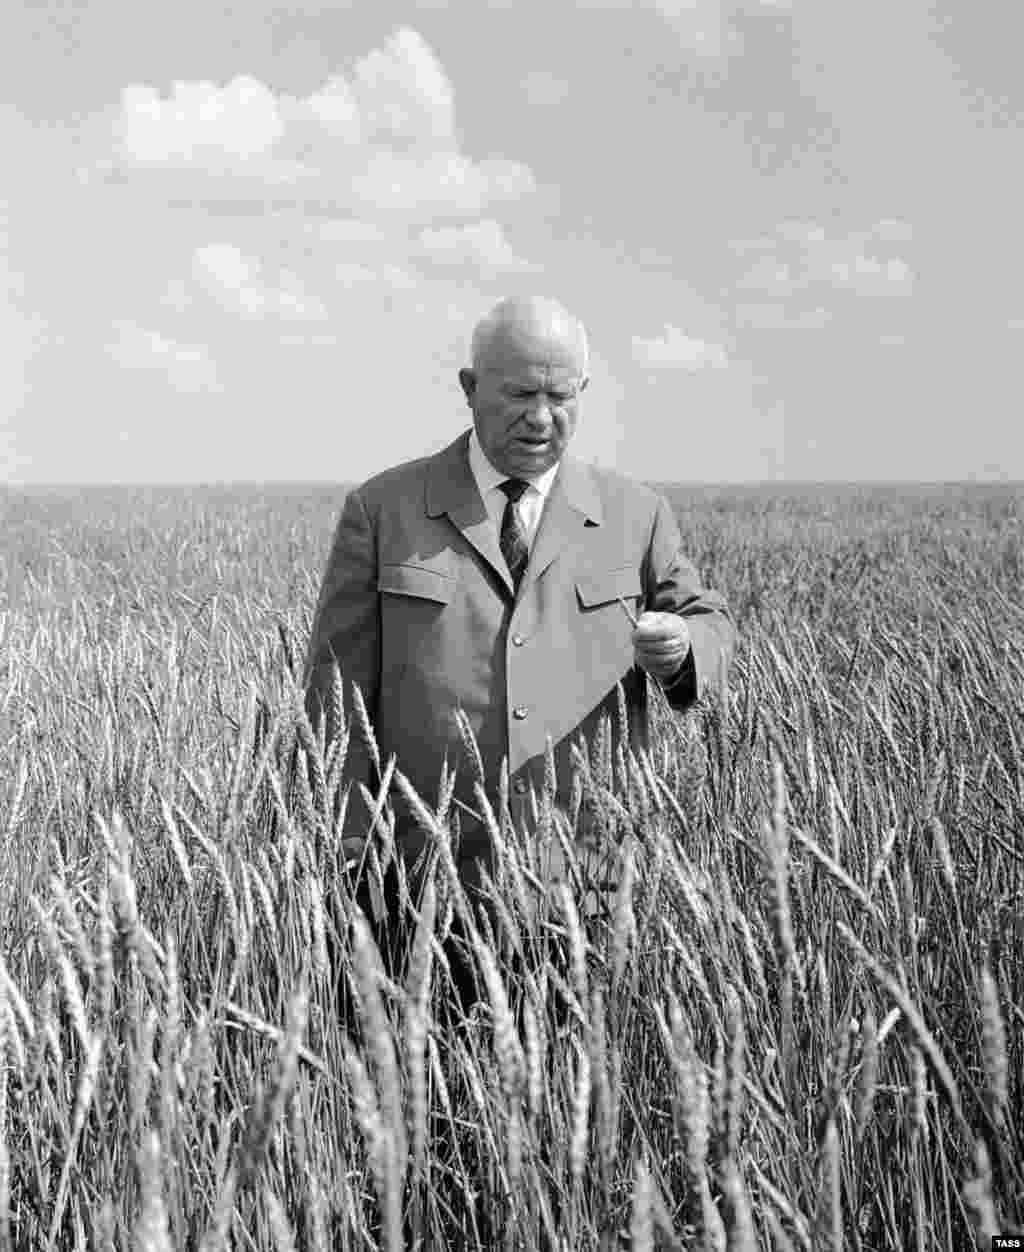 """In the mid-50s Khrushchev launched his """"virgin Lands' campaign to encourage farming on the previously uncultivated land in the Soviet Republic of Kazakhstan. In the picutre - Nikita Khrushchev in a virgin-soil field 18 April 1964, in Kazkahstan"""